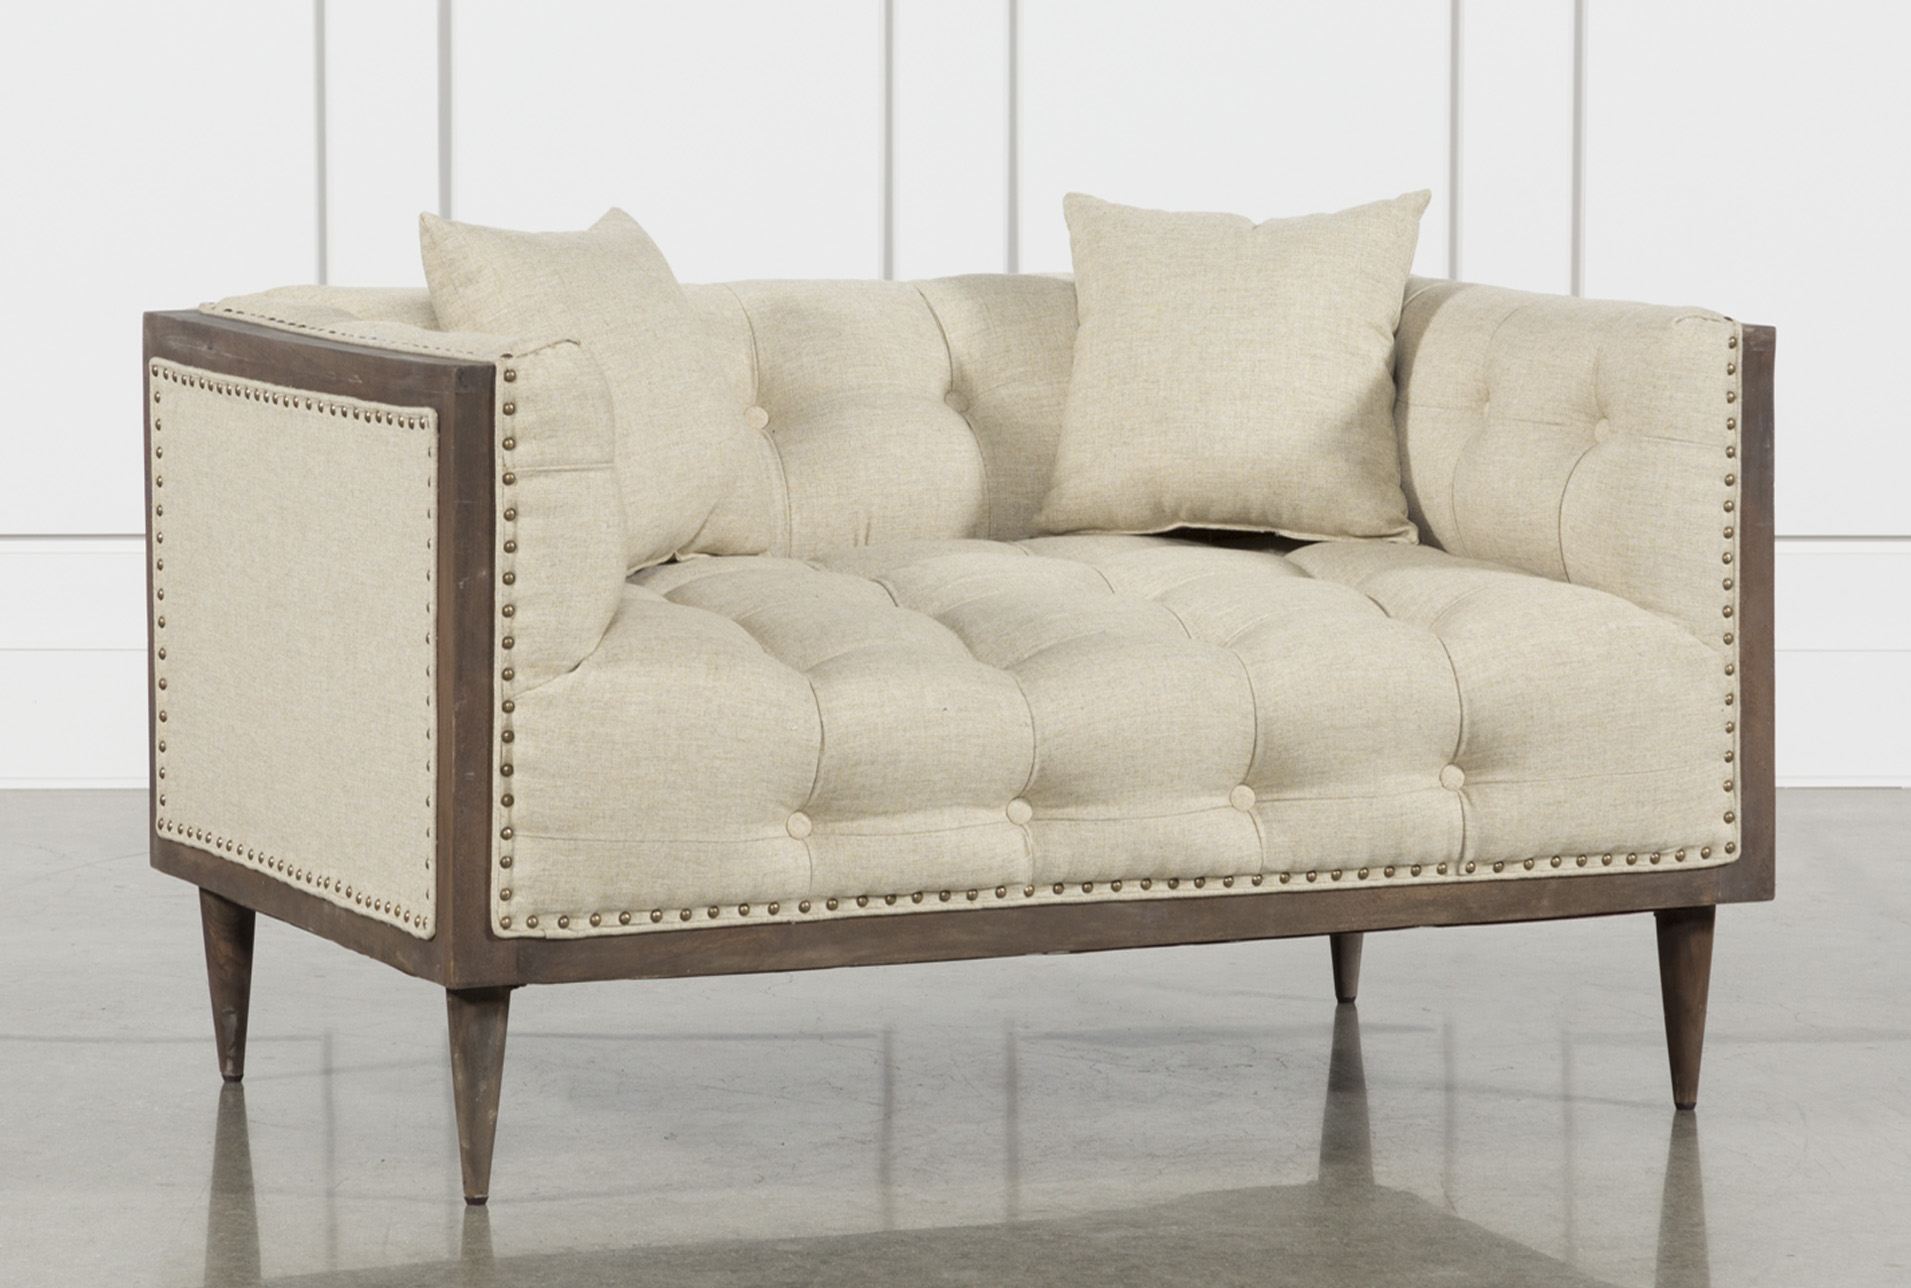 High Quality Oversized Tufted Chair Beige (Qty: 1) Has Been Successfully Added To Your  Cart.